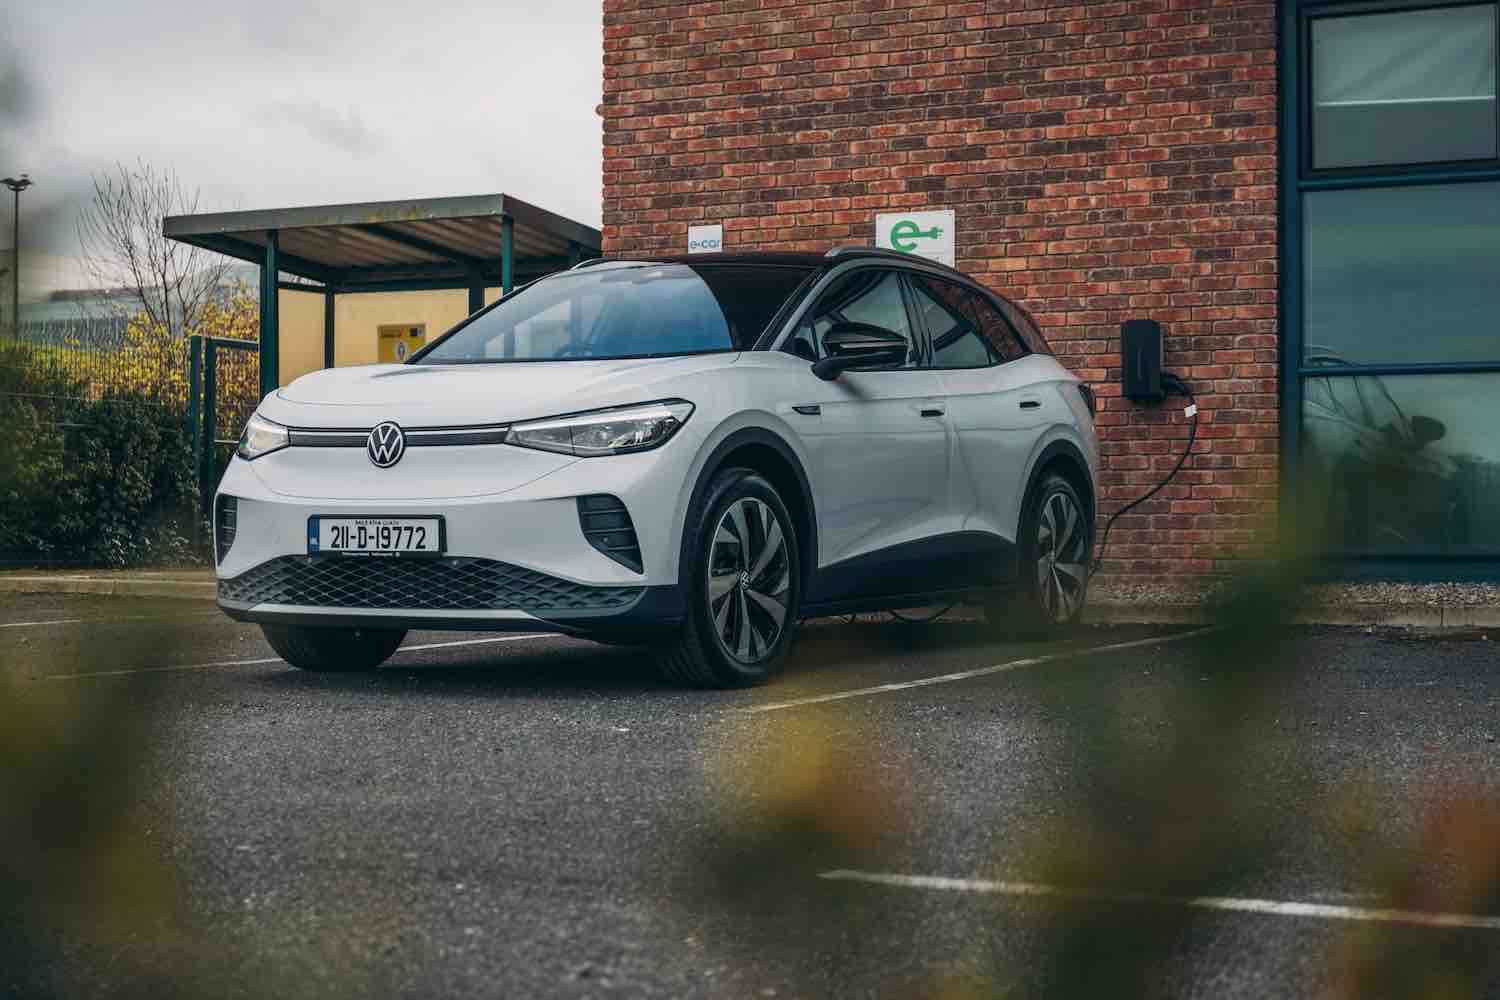 Car News | Volkswagen hits out at Irish Government's EV proposals | CompleteCar.ie